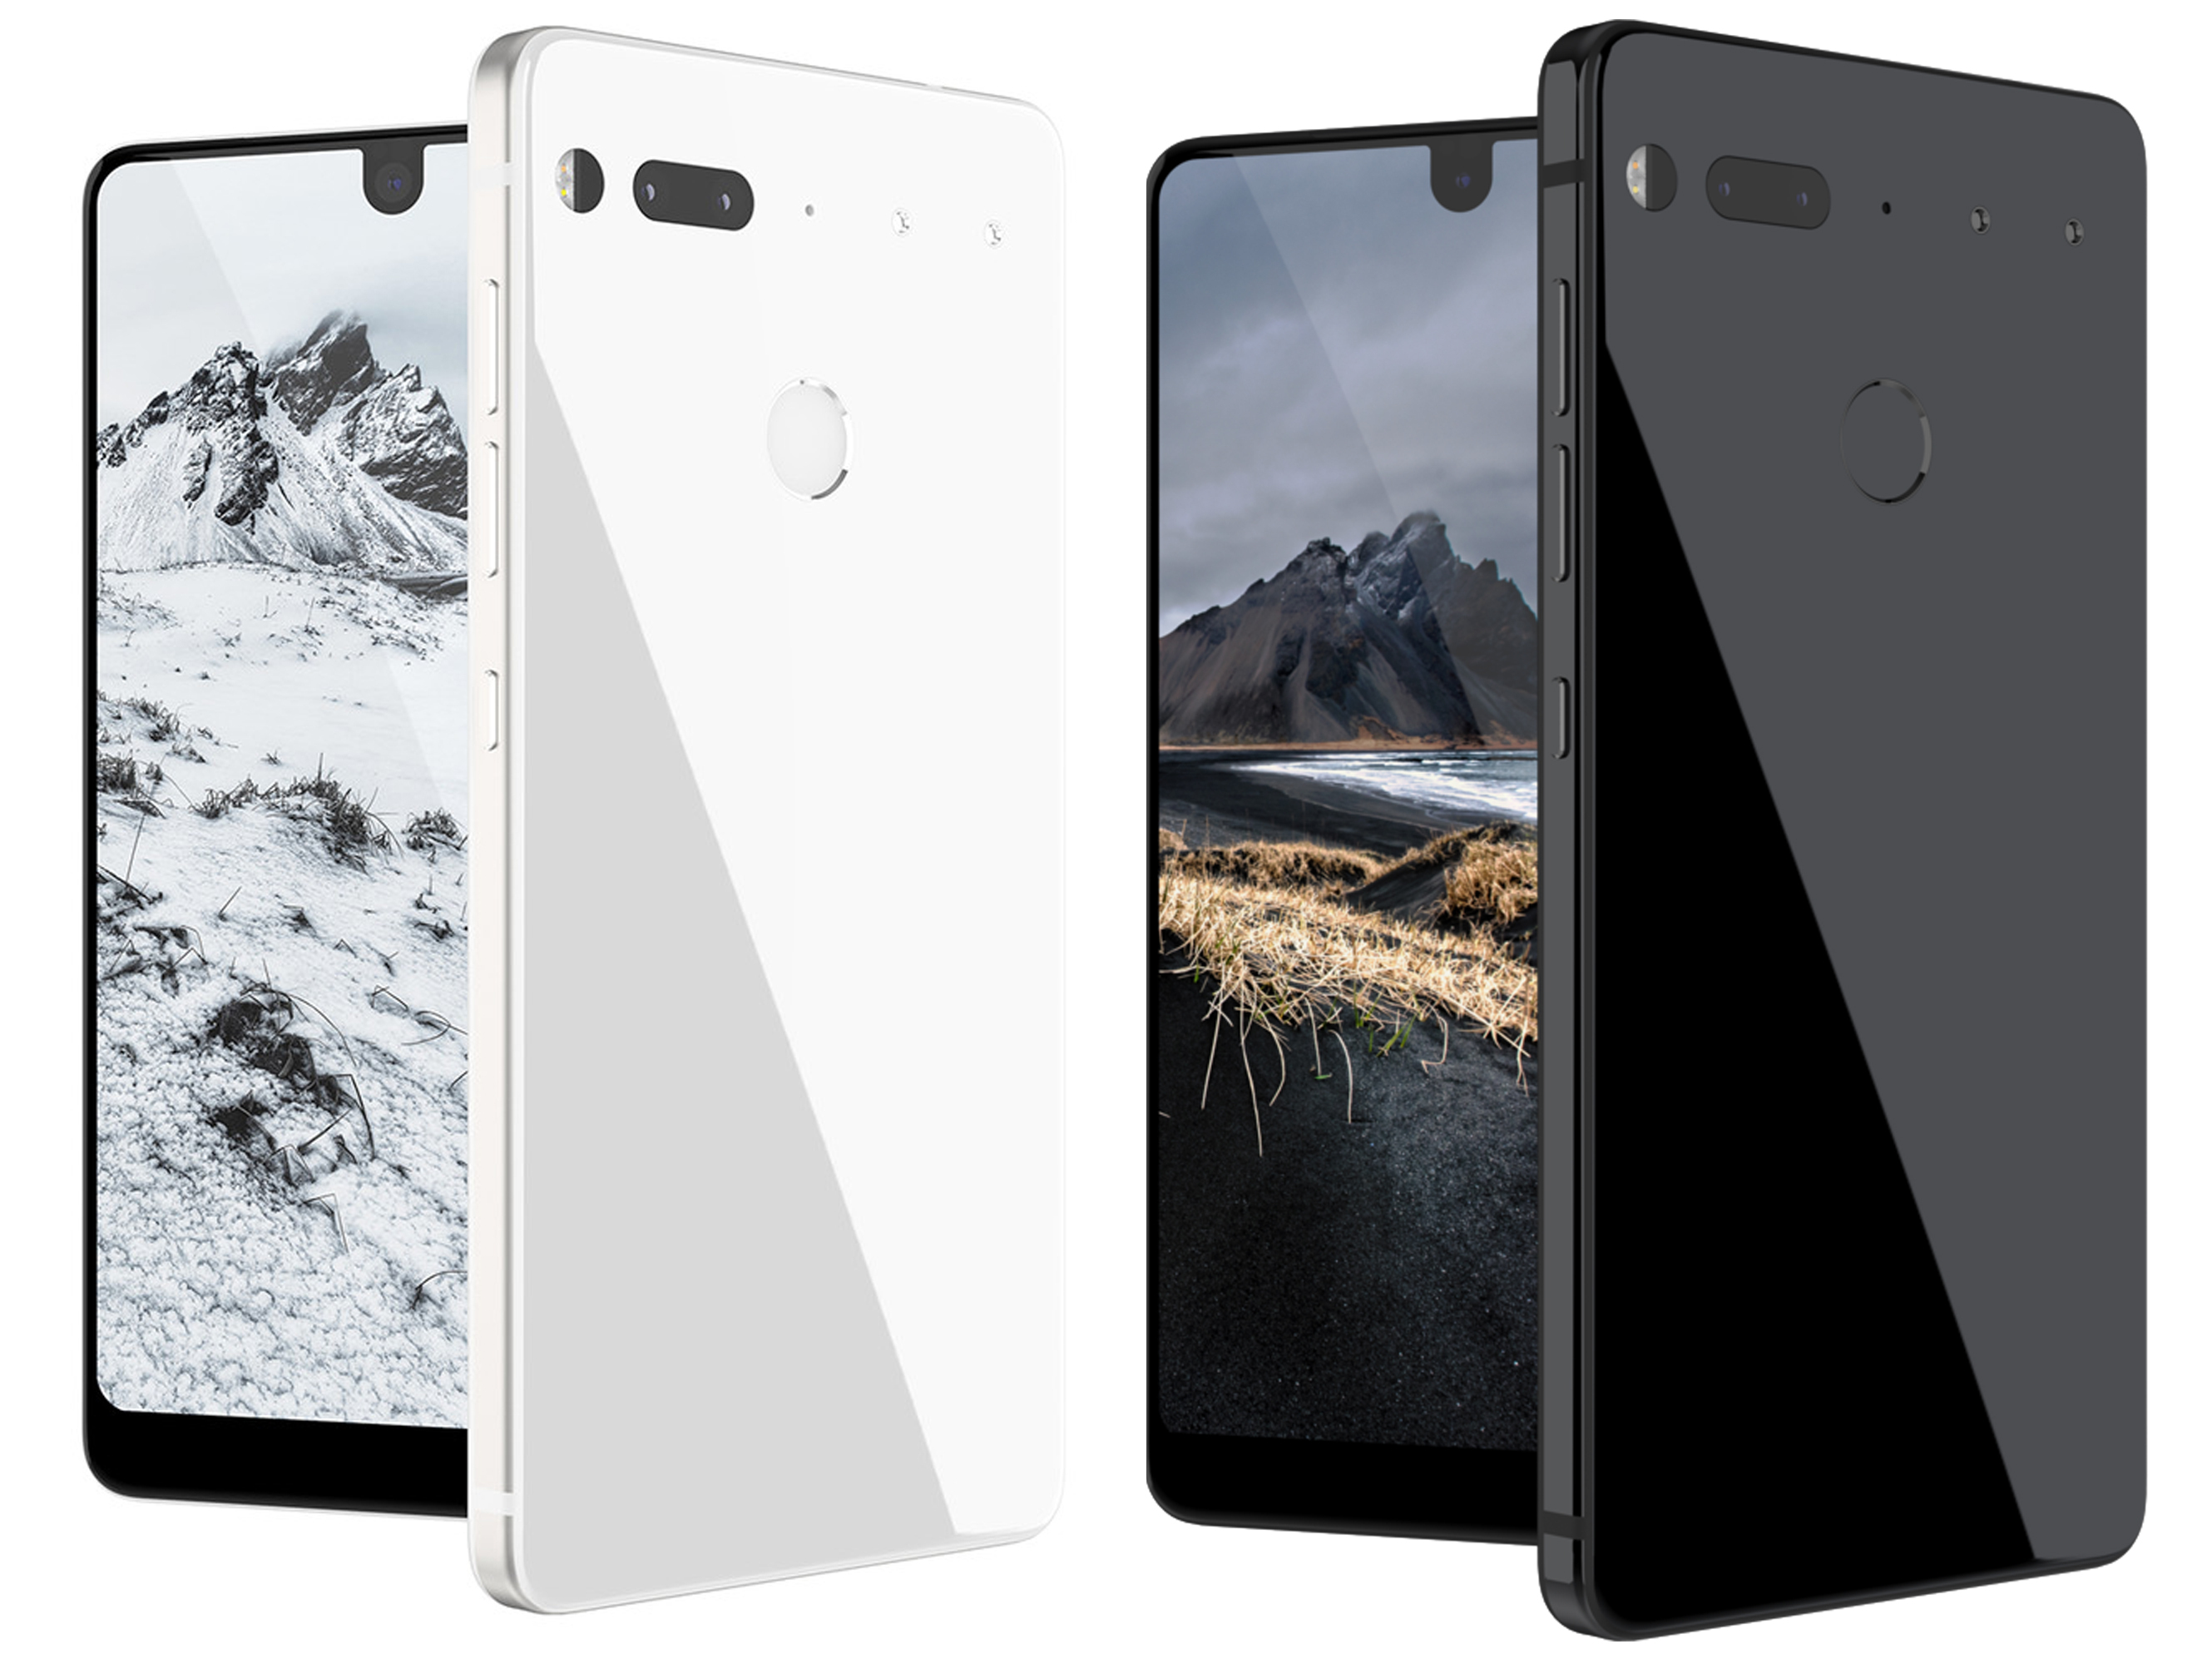 Essential phones